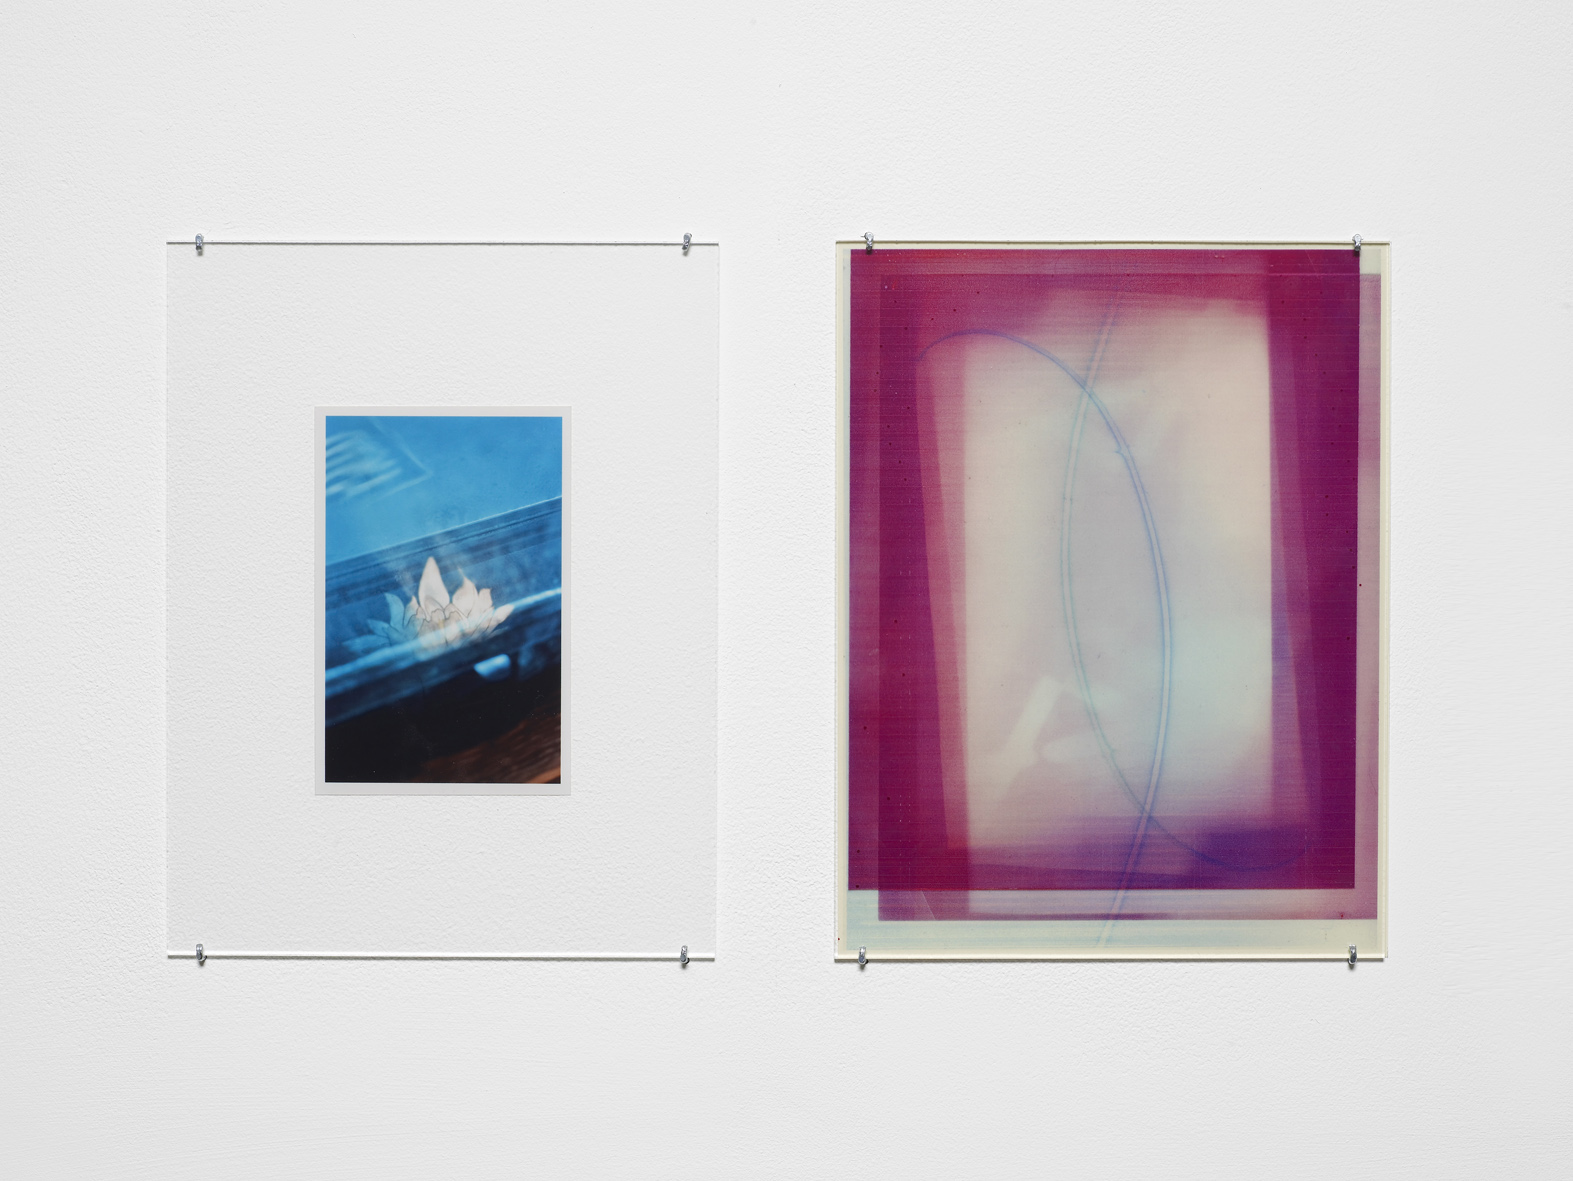 Untitled 2015 Unique C-print, inkjet print, inkjet print on transparency, non-reflective perspex, L shaped pins  2 parts, each: 27.9 x 21.5 cm / 11 x 8.5 in